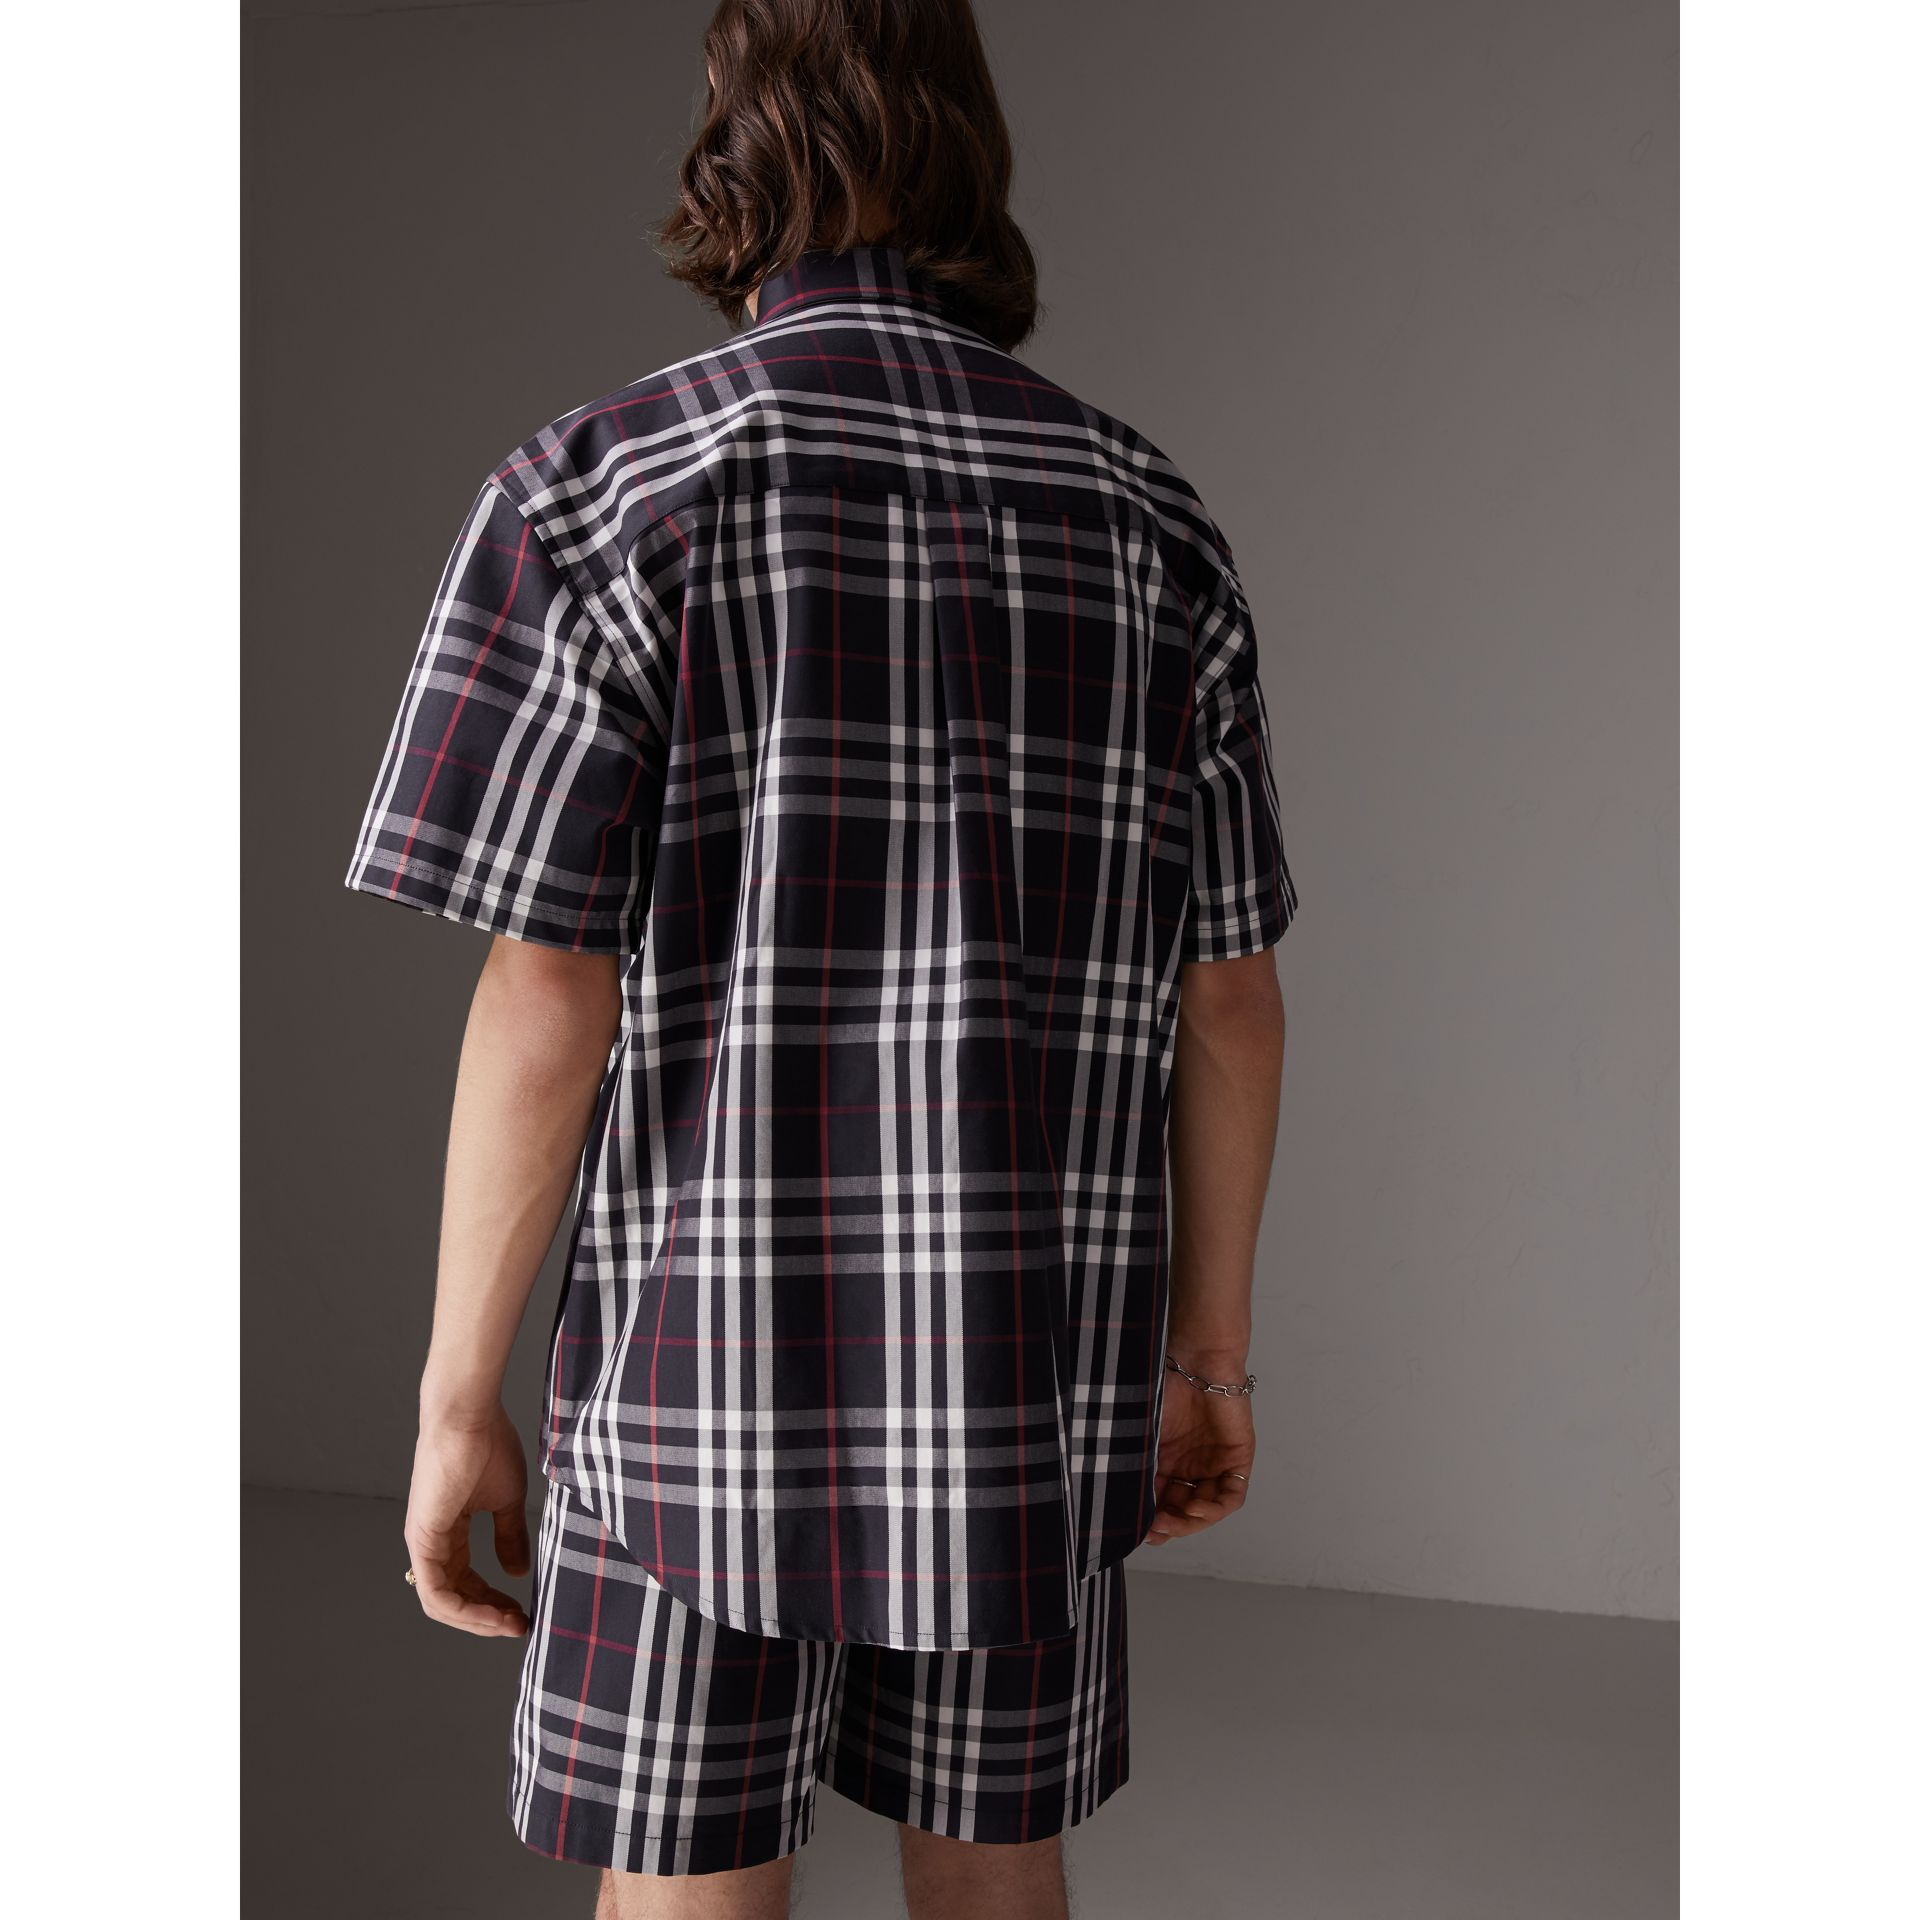 Gosha x Burberry Short-sleeve Check Shirt in Navy | Burberry - gallery image 5